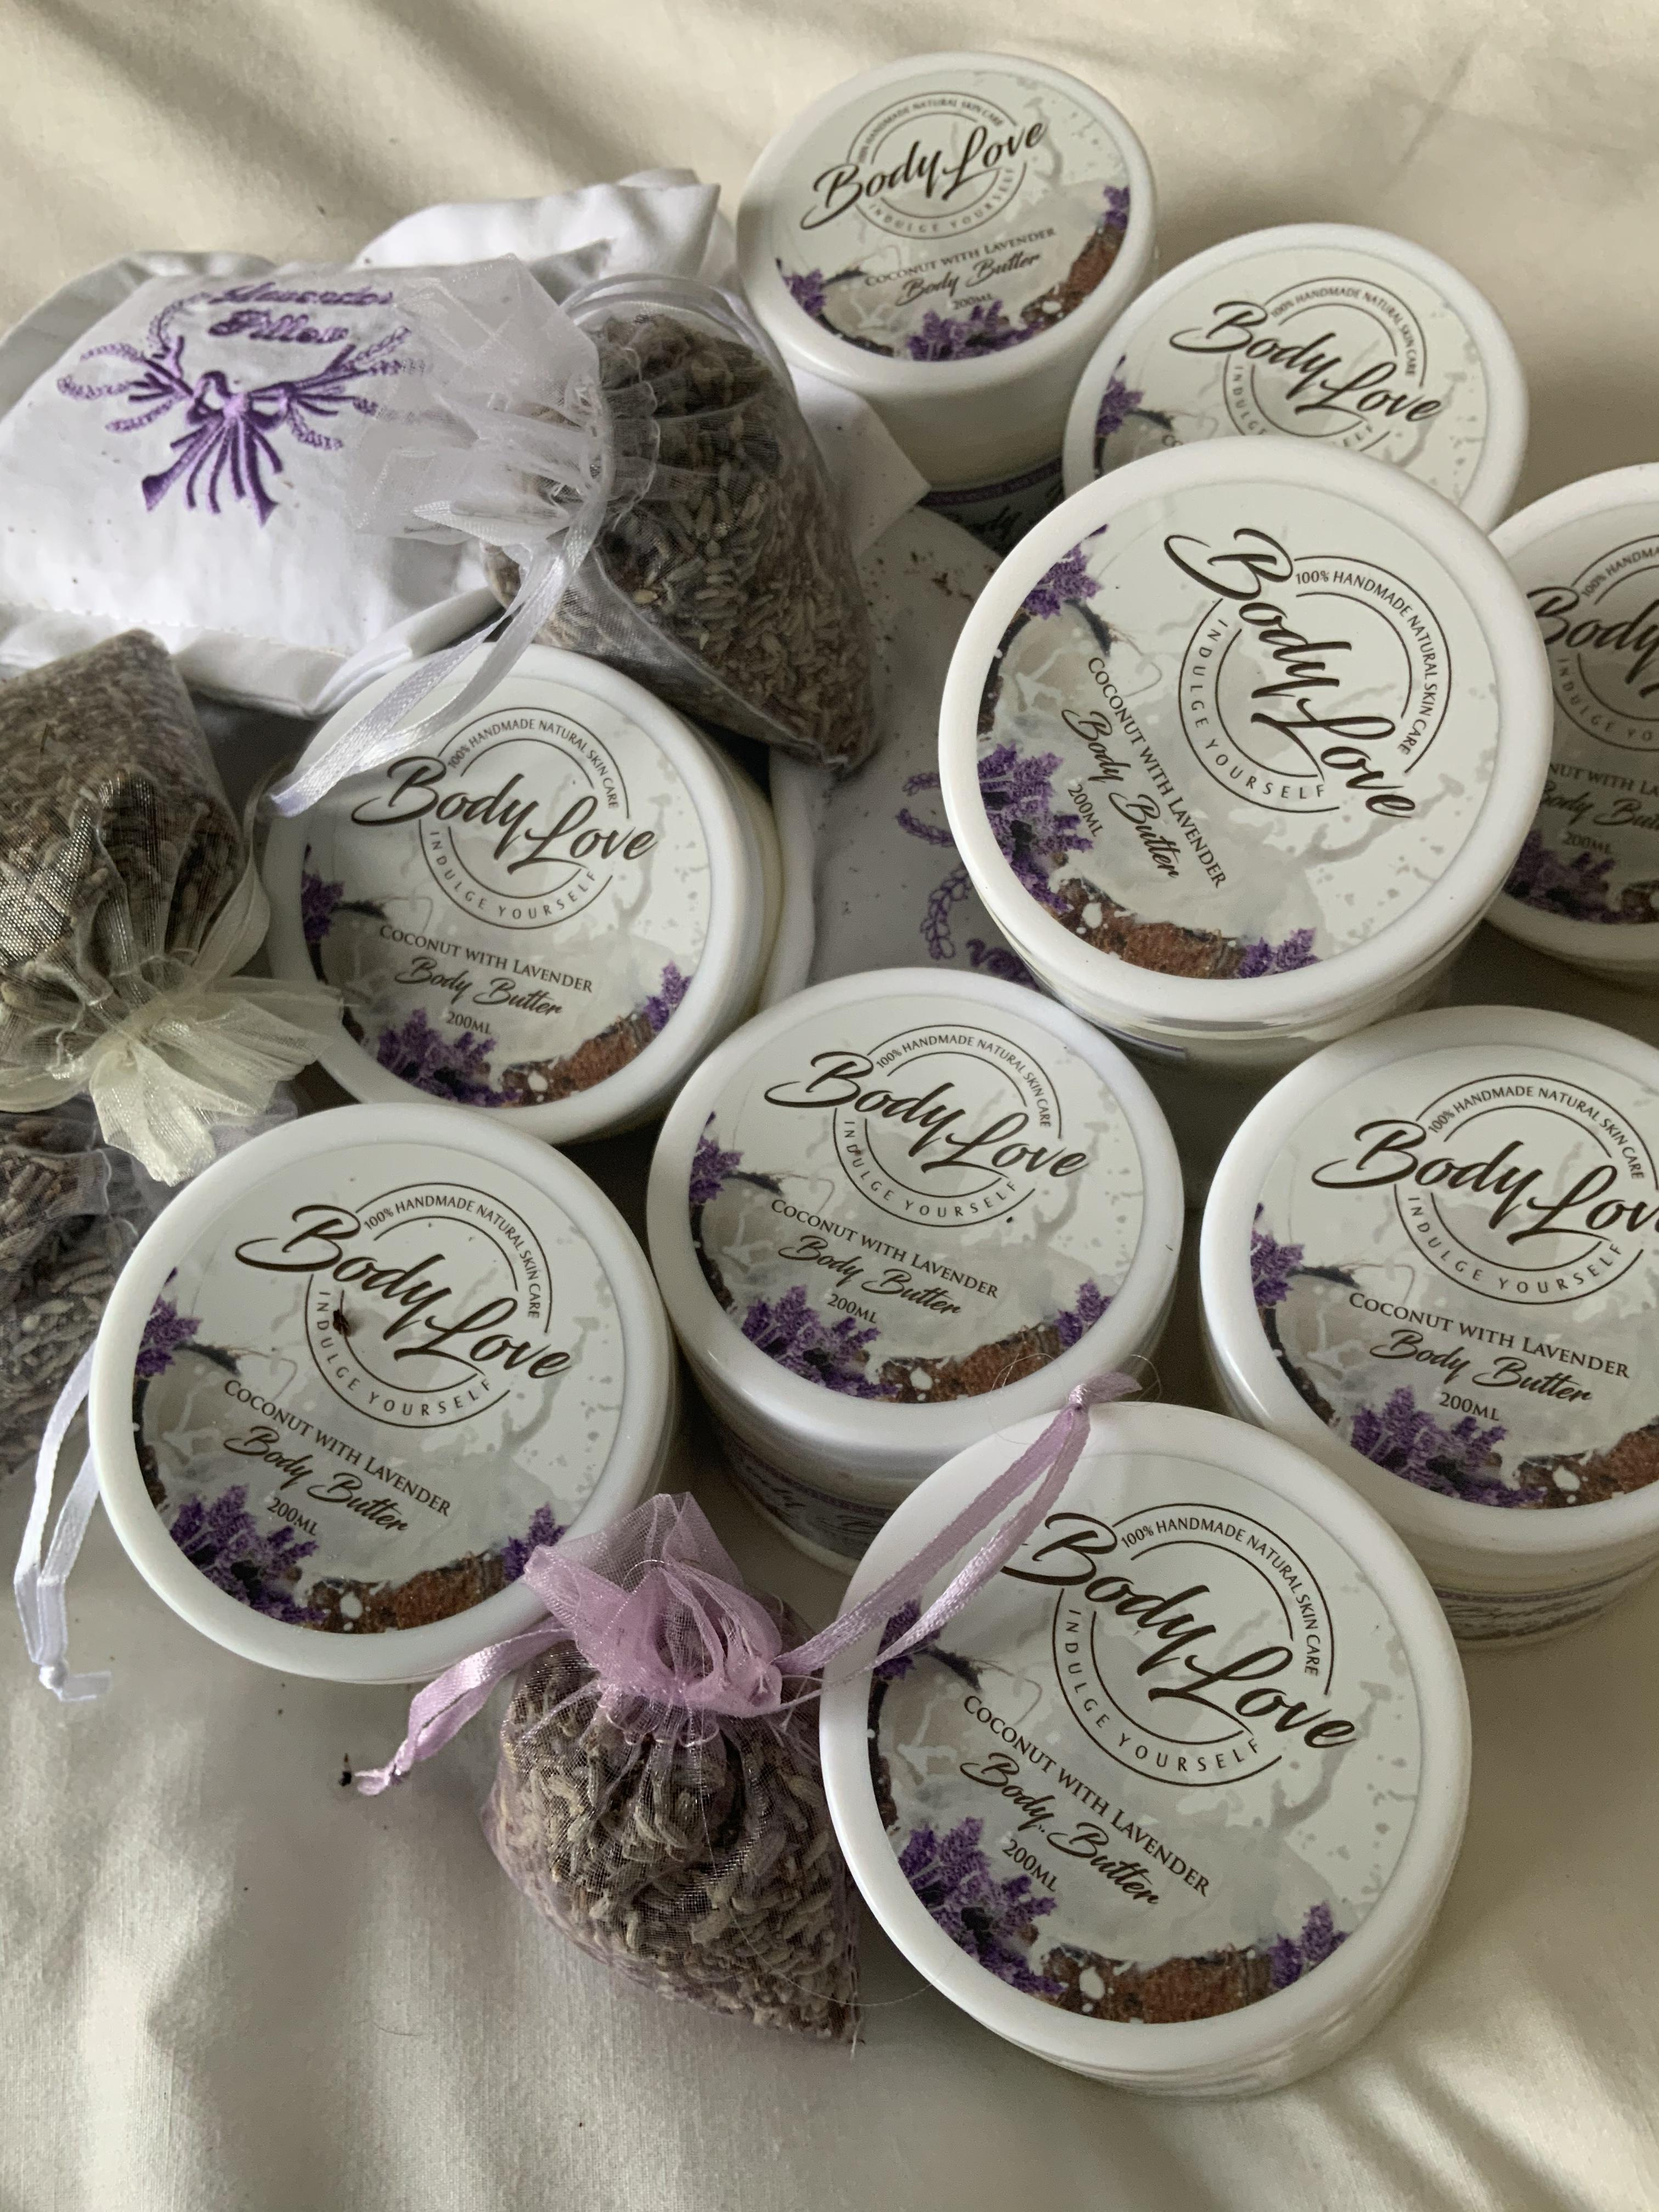 Body Butters, Lavender being most popular as it aids sleep and beneficial for Psoriasis & Eczema